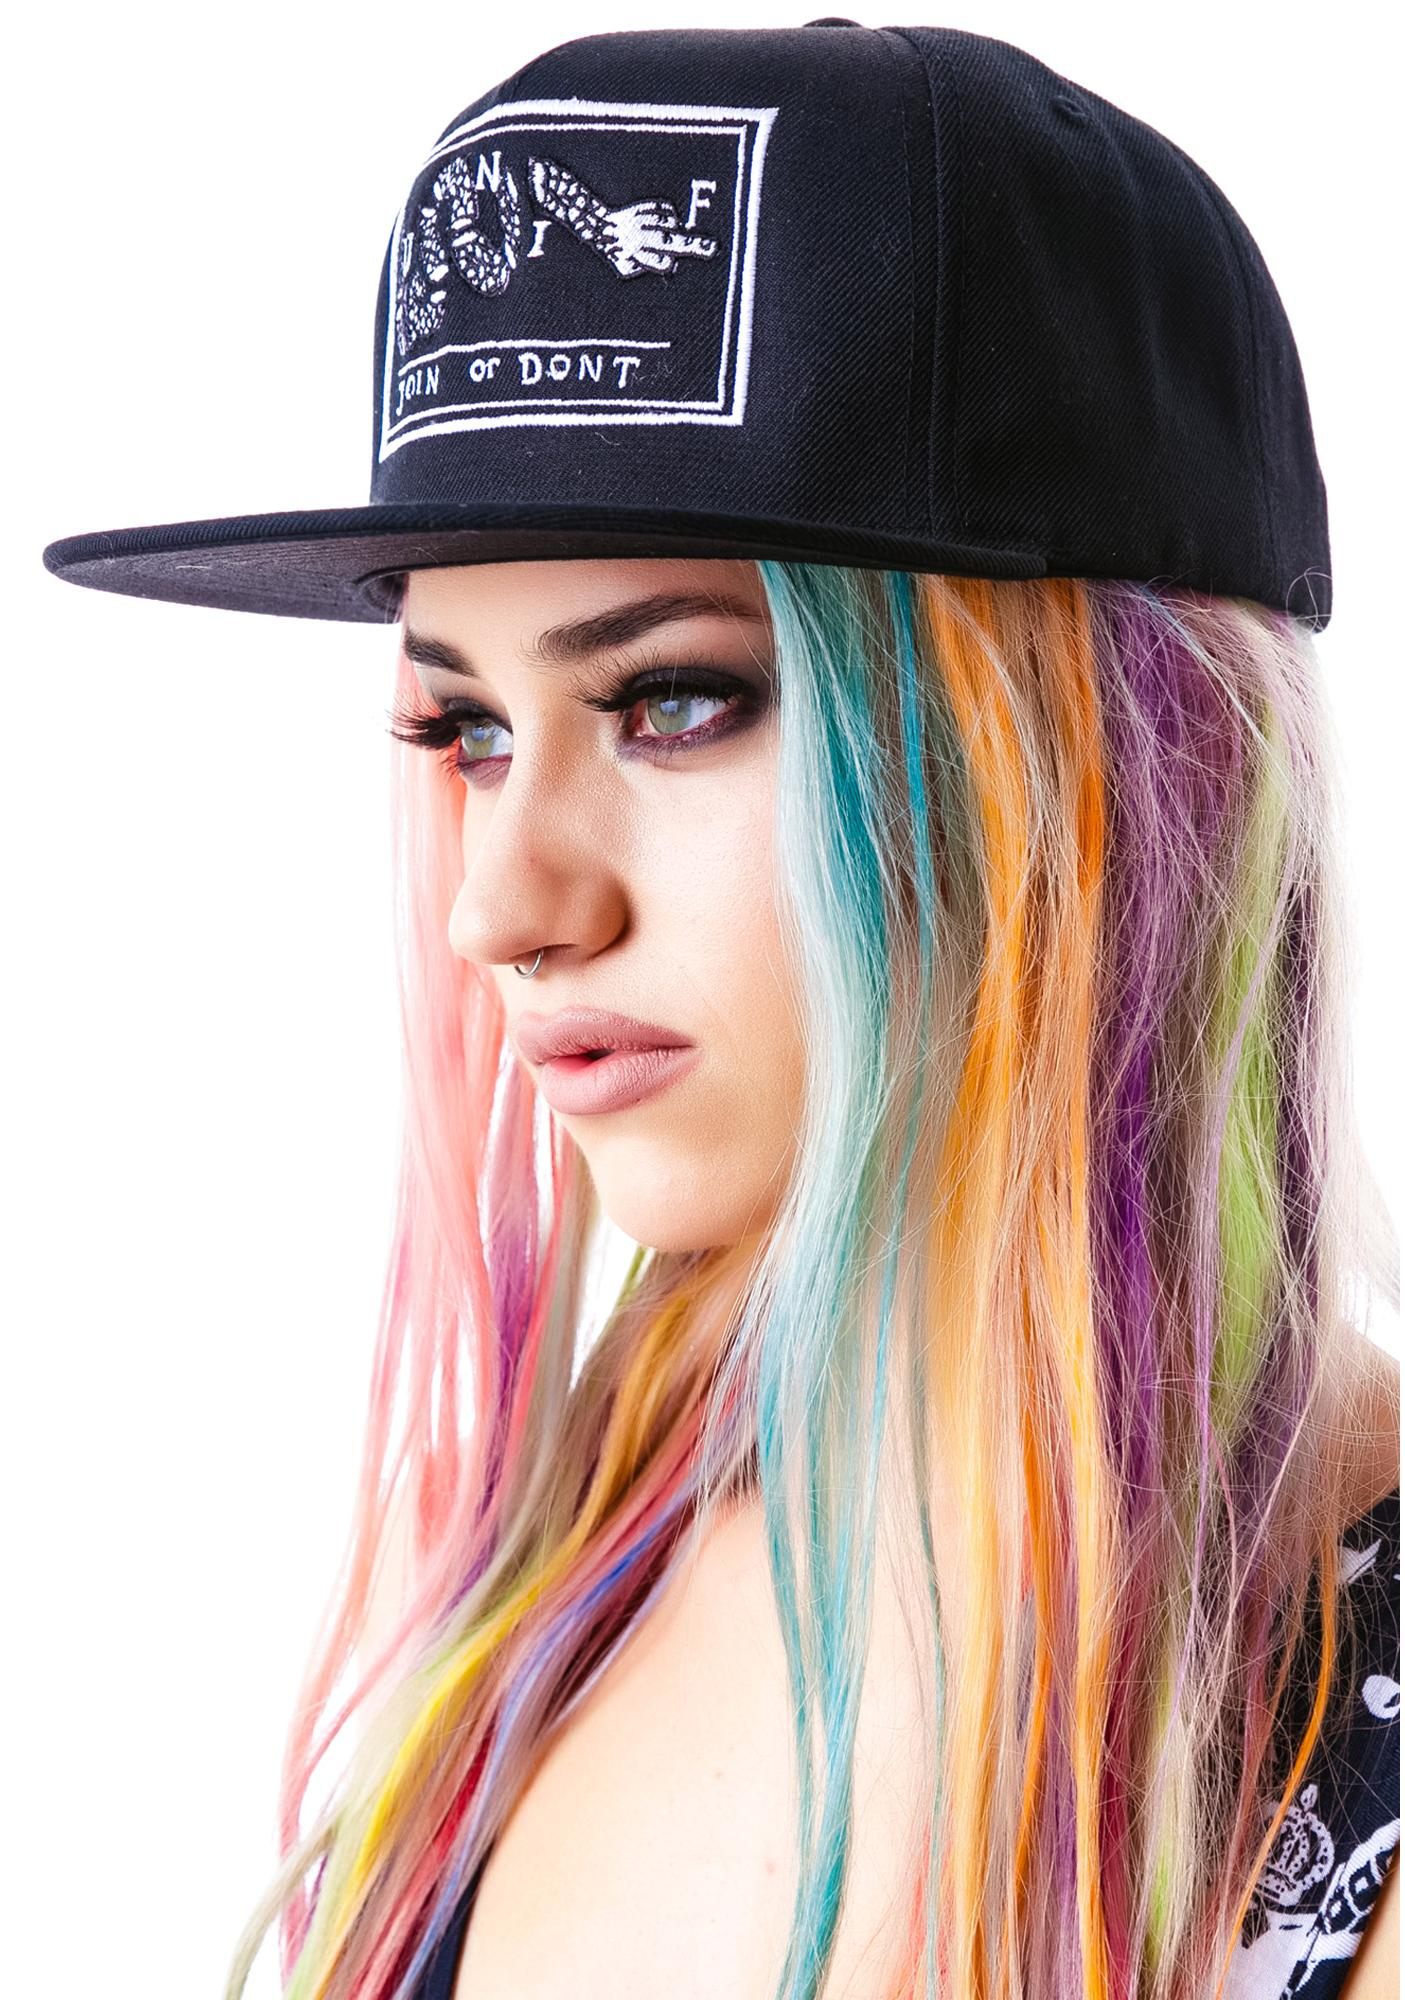 UNIF Join or Don't Hat